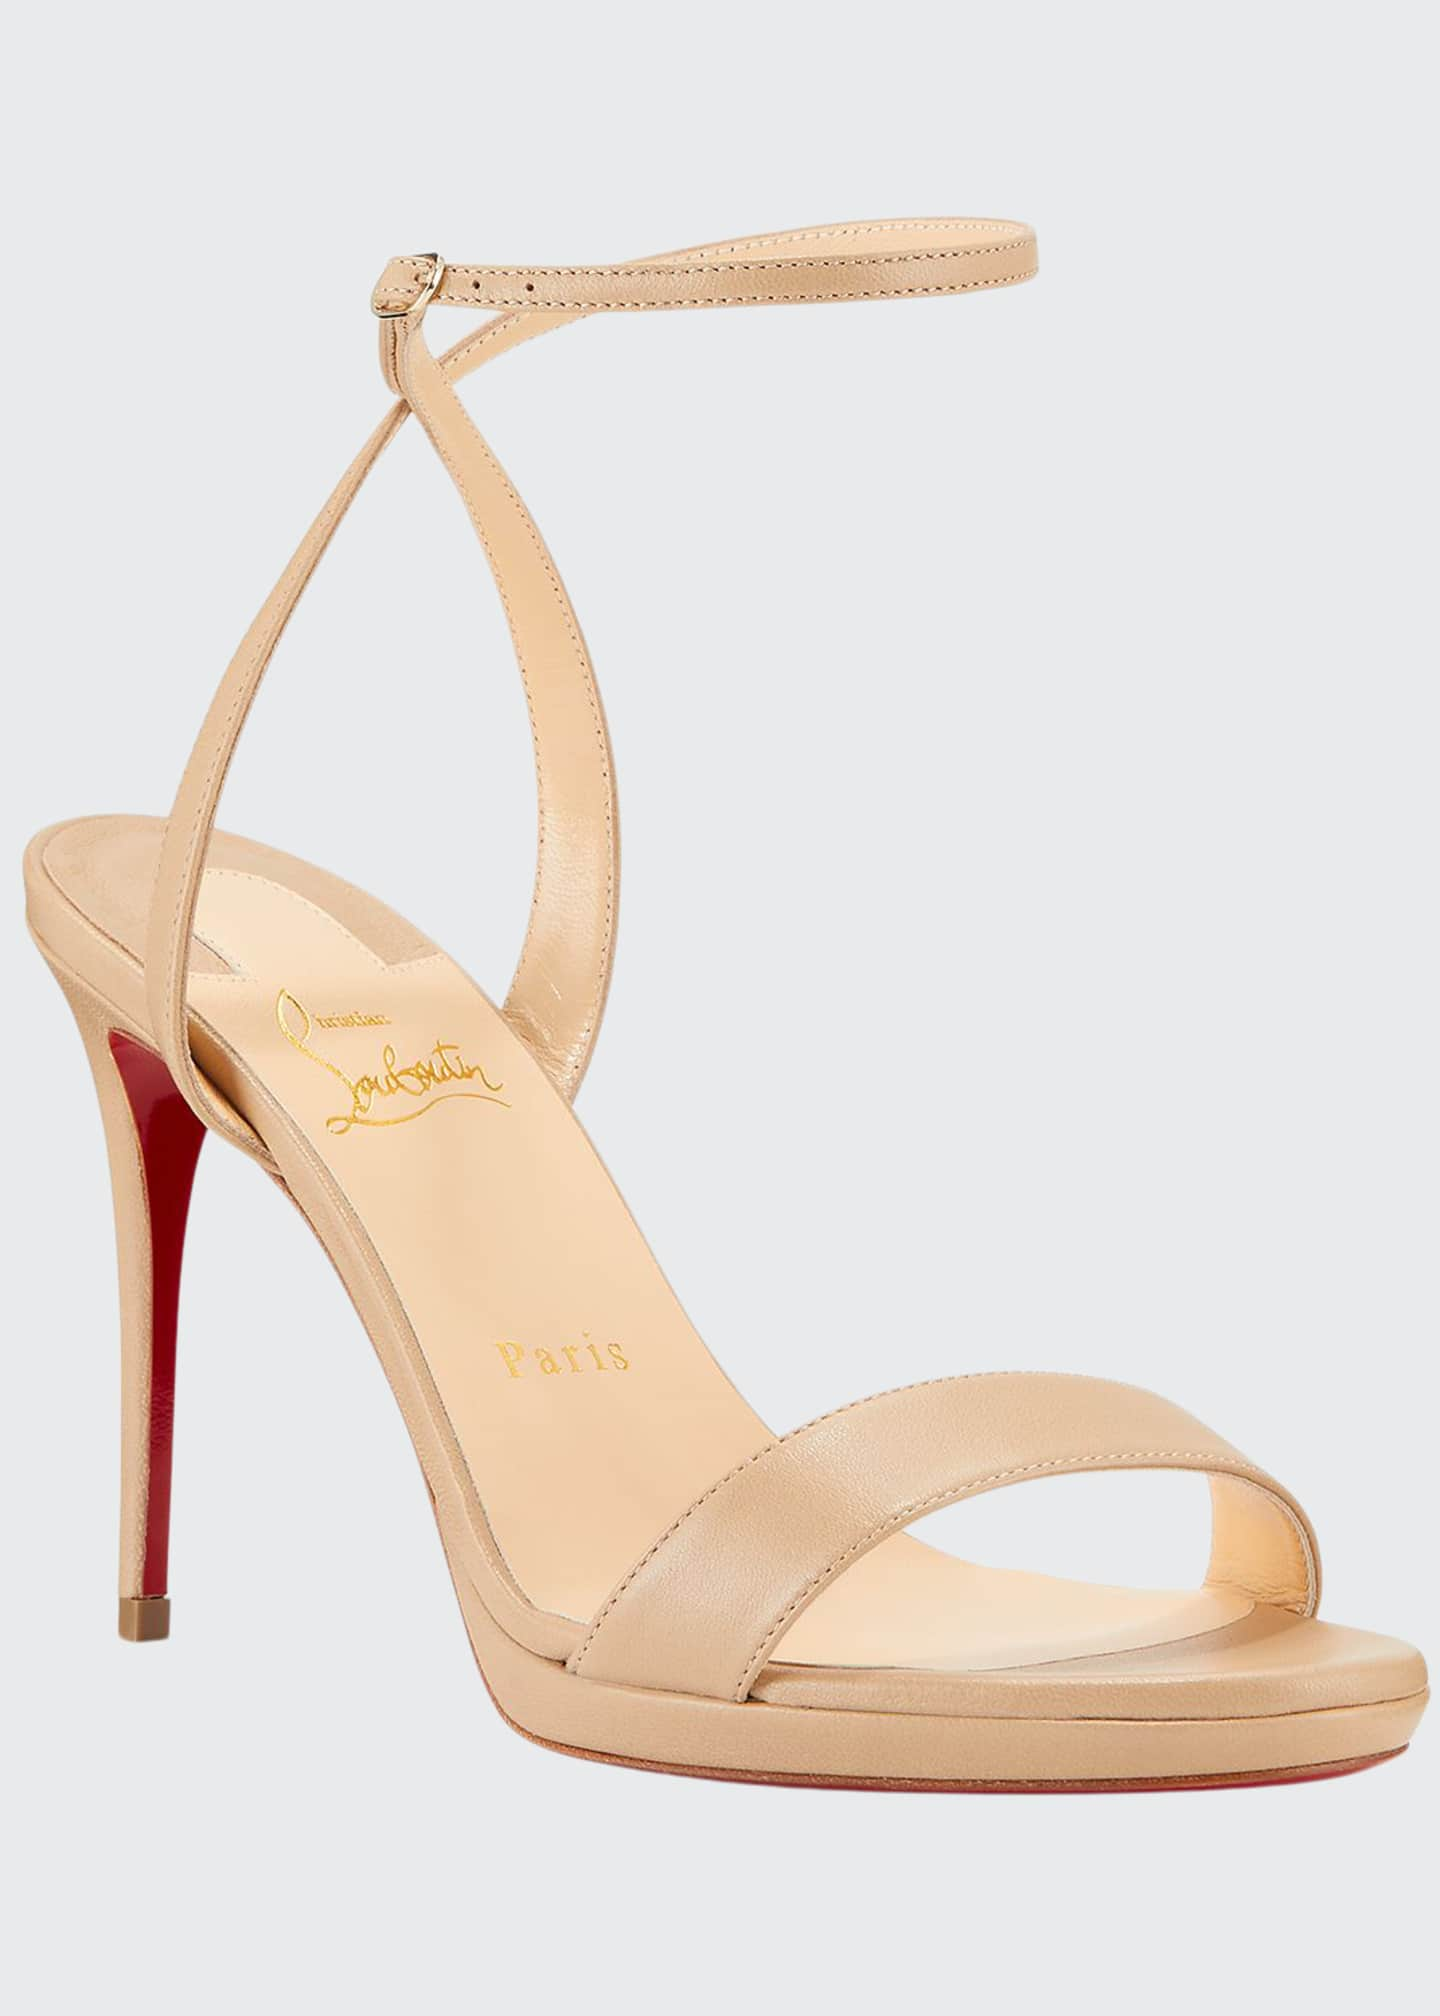 Image 1 of 3: Loubi Queen Red Sole Ankle-Wrap Sandals